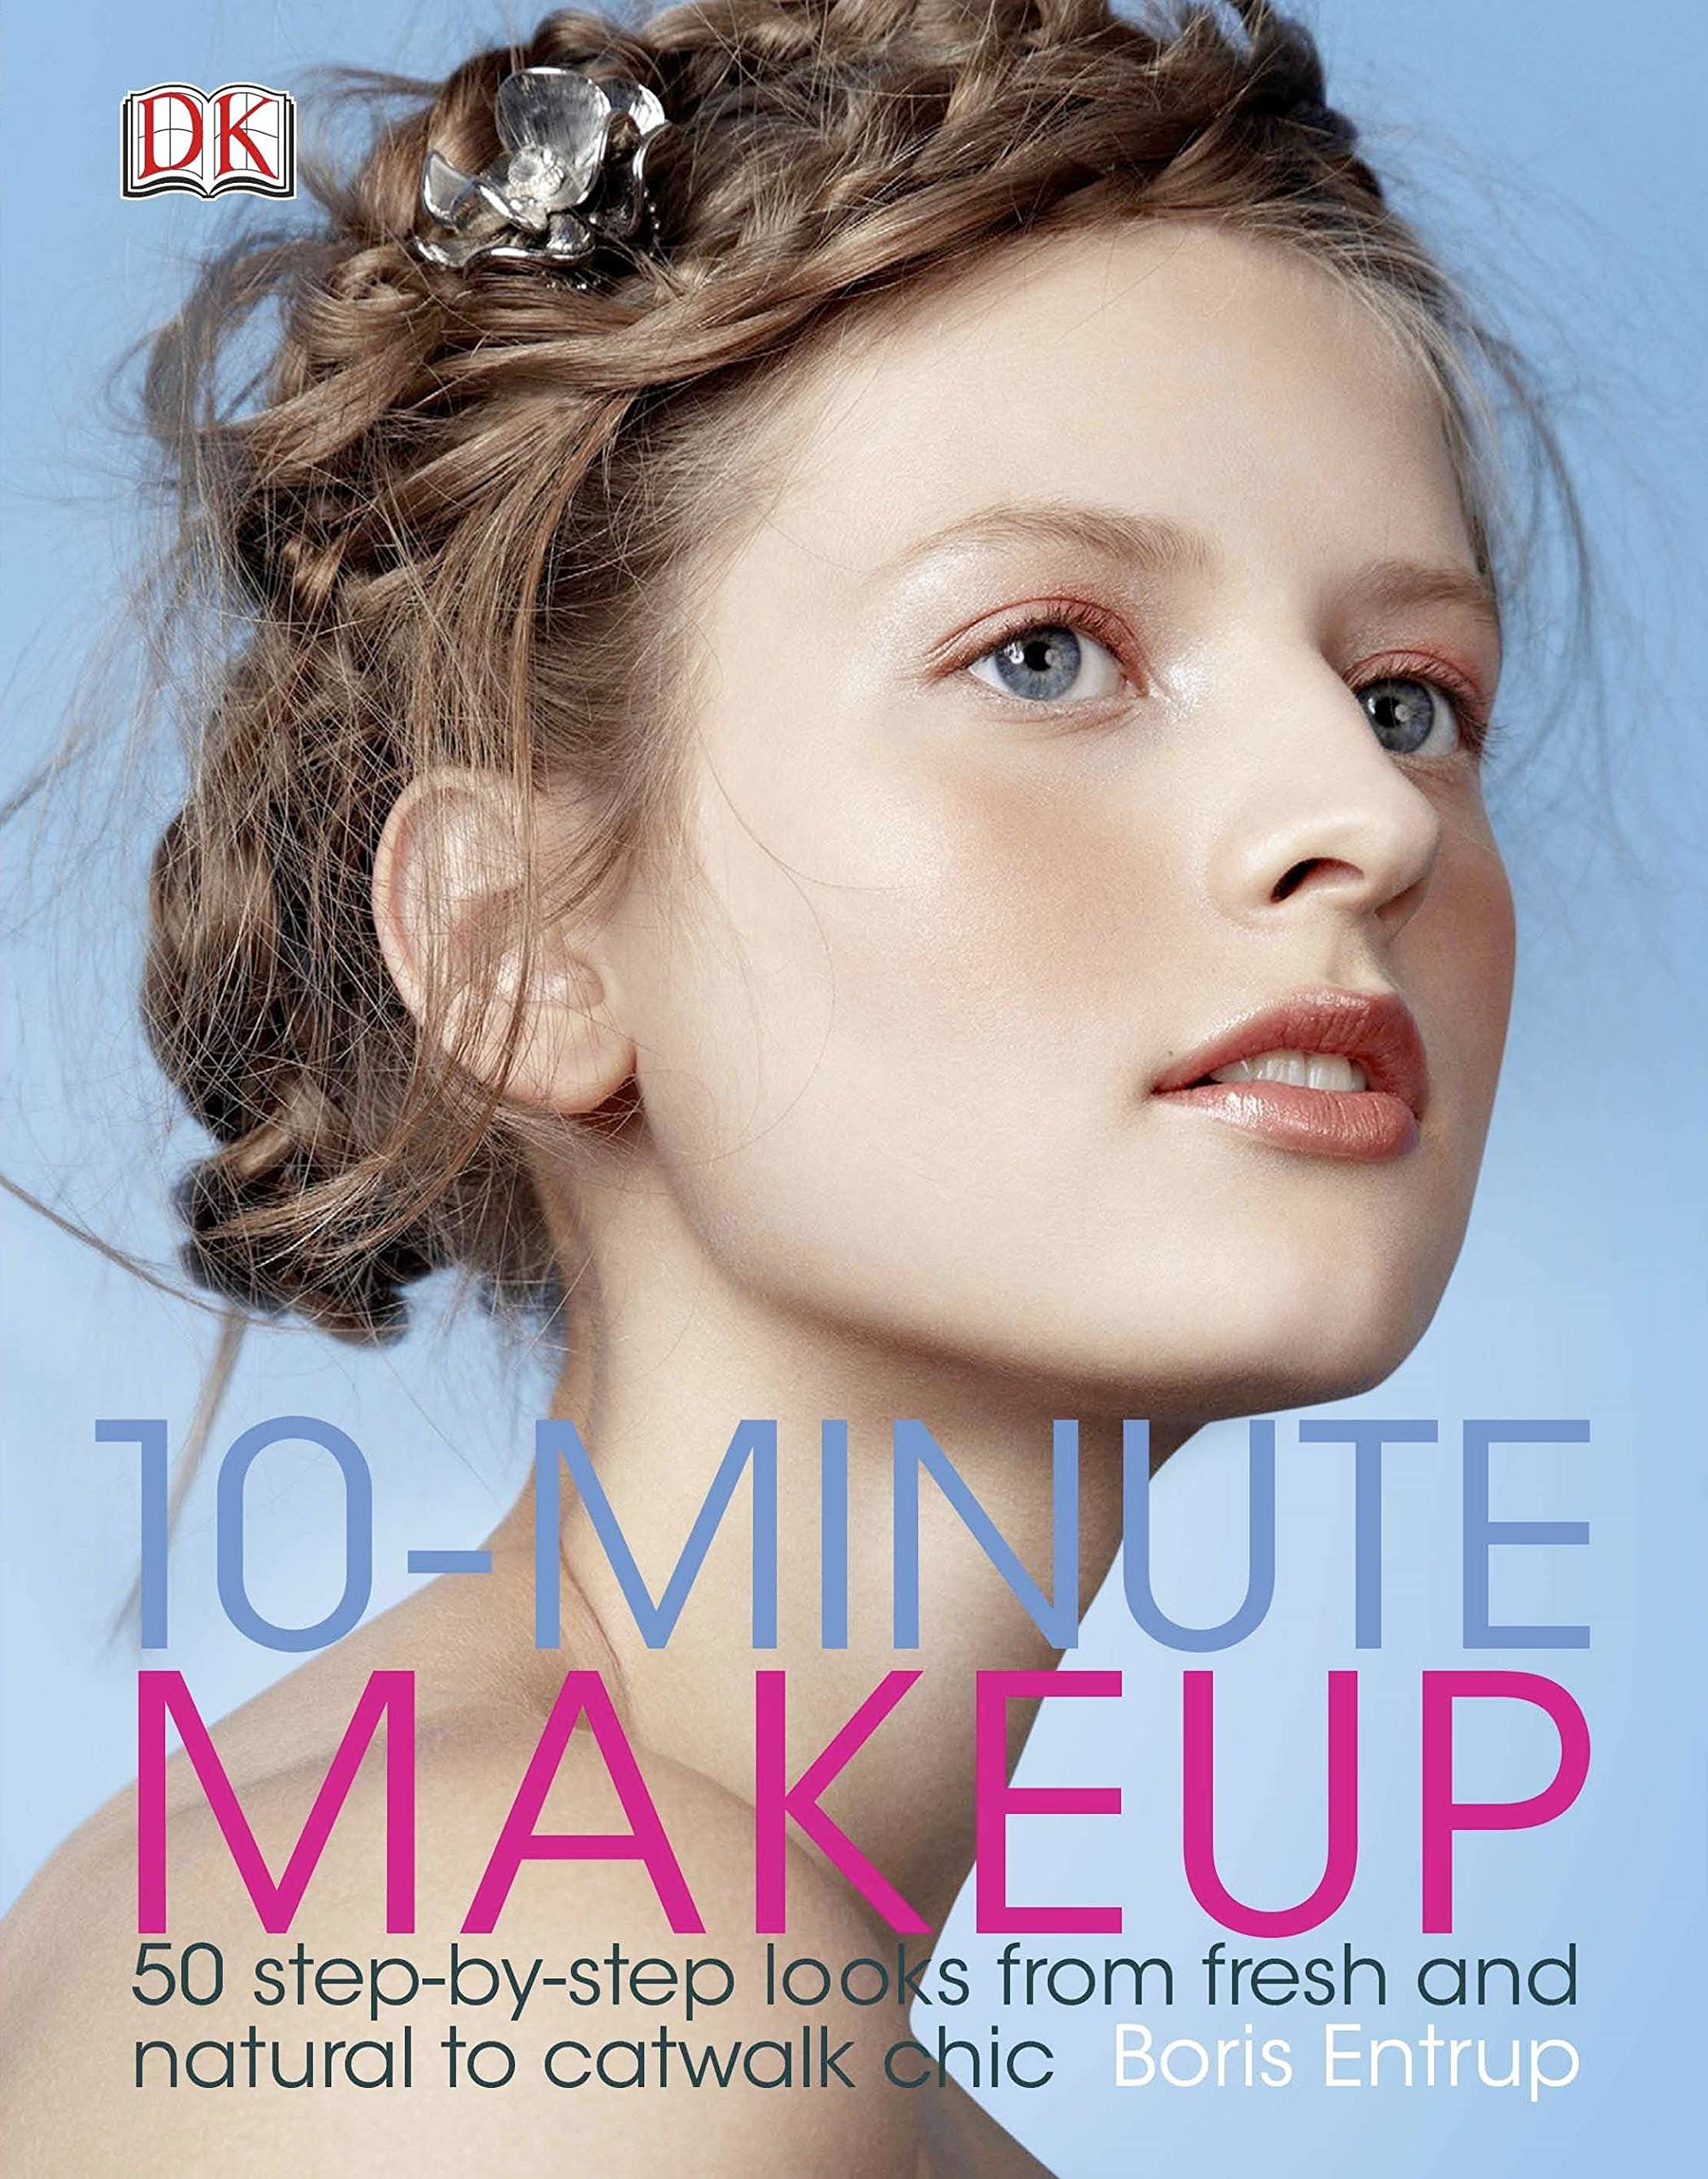 10-Minute Makeup: 50 Step-by-Step Looks from Fresh and Natural to Catwalk Chic Hardcover – March 17, 2014